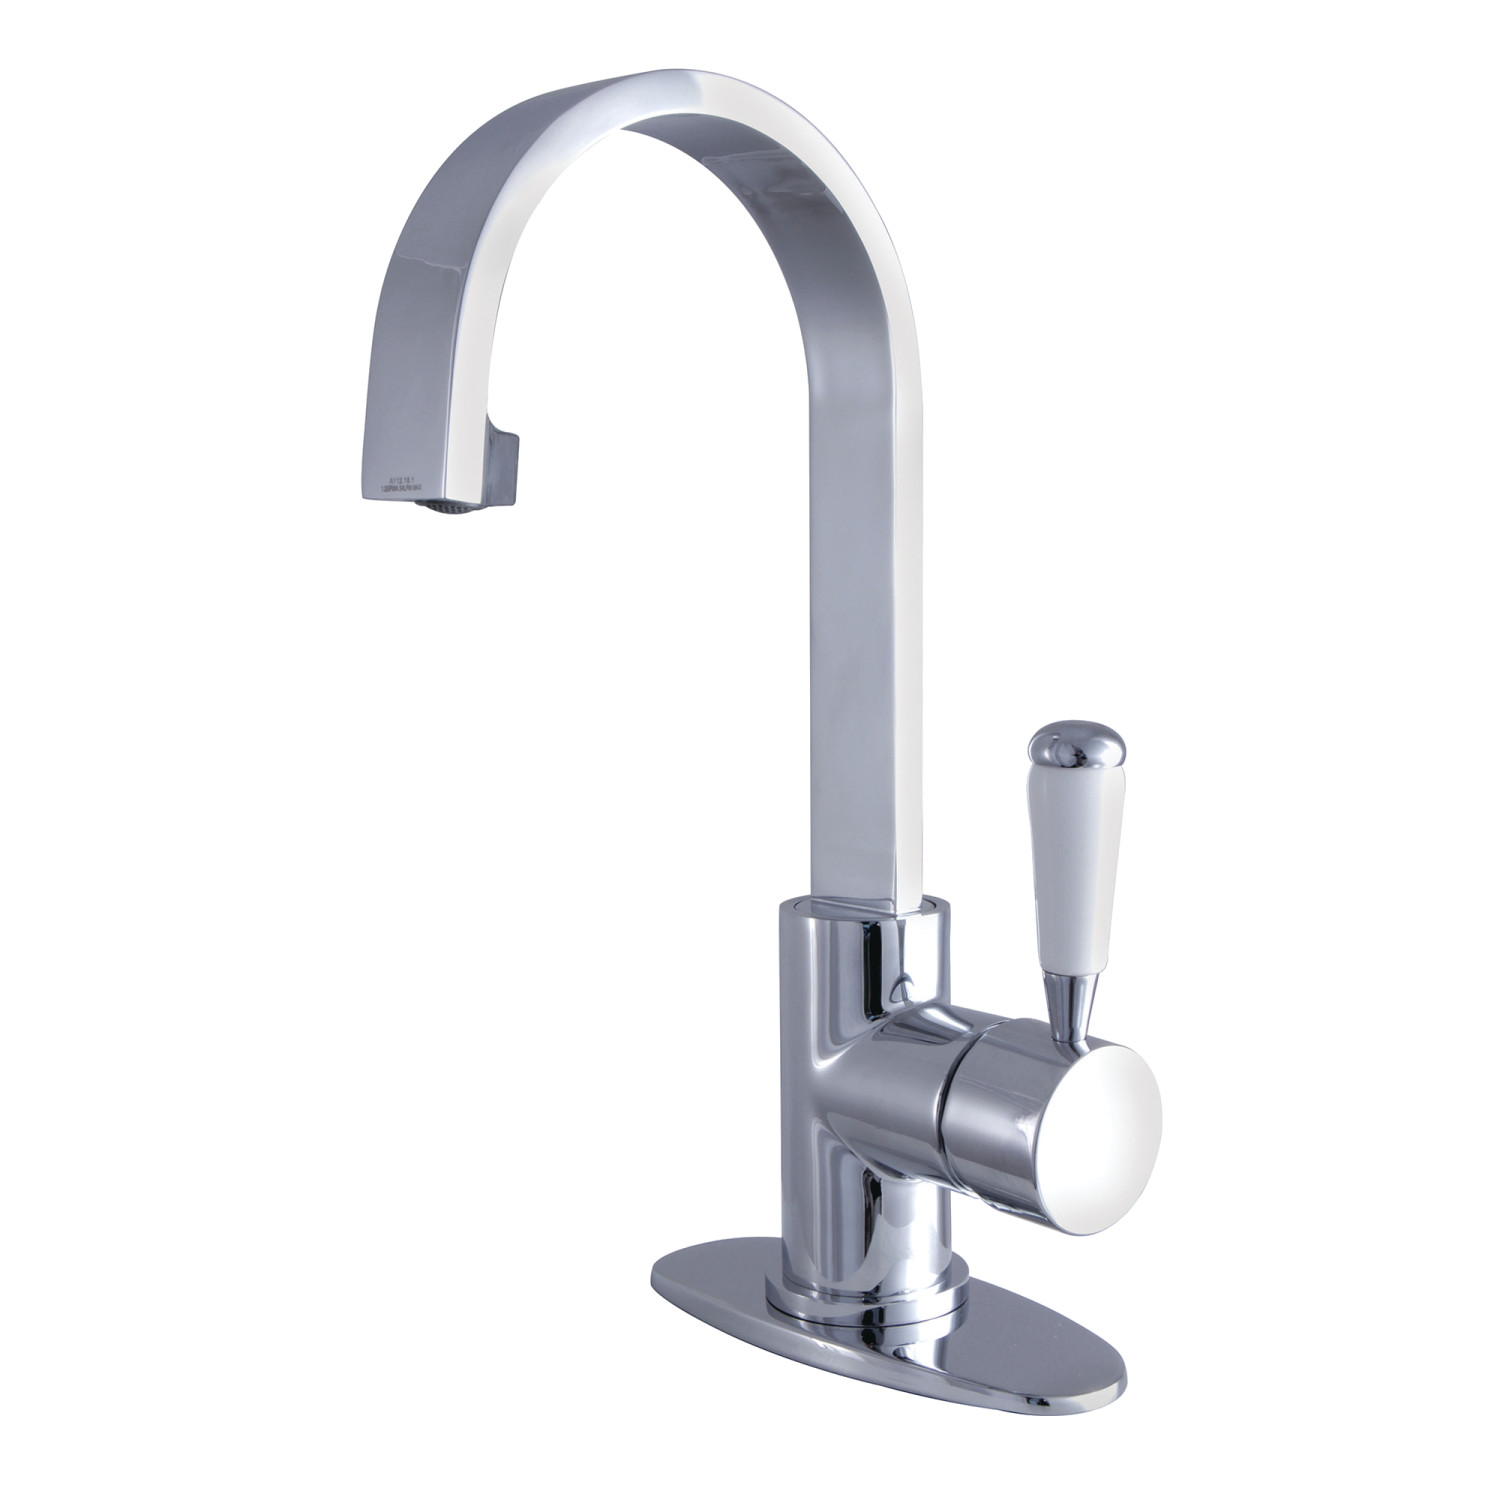 Single-Handle 1-Hole Deck Mounted Bathroom Faucet in Polished Chrome with 3 Finish Options